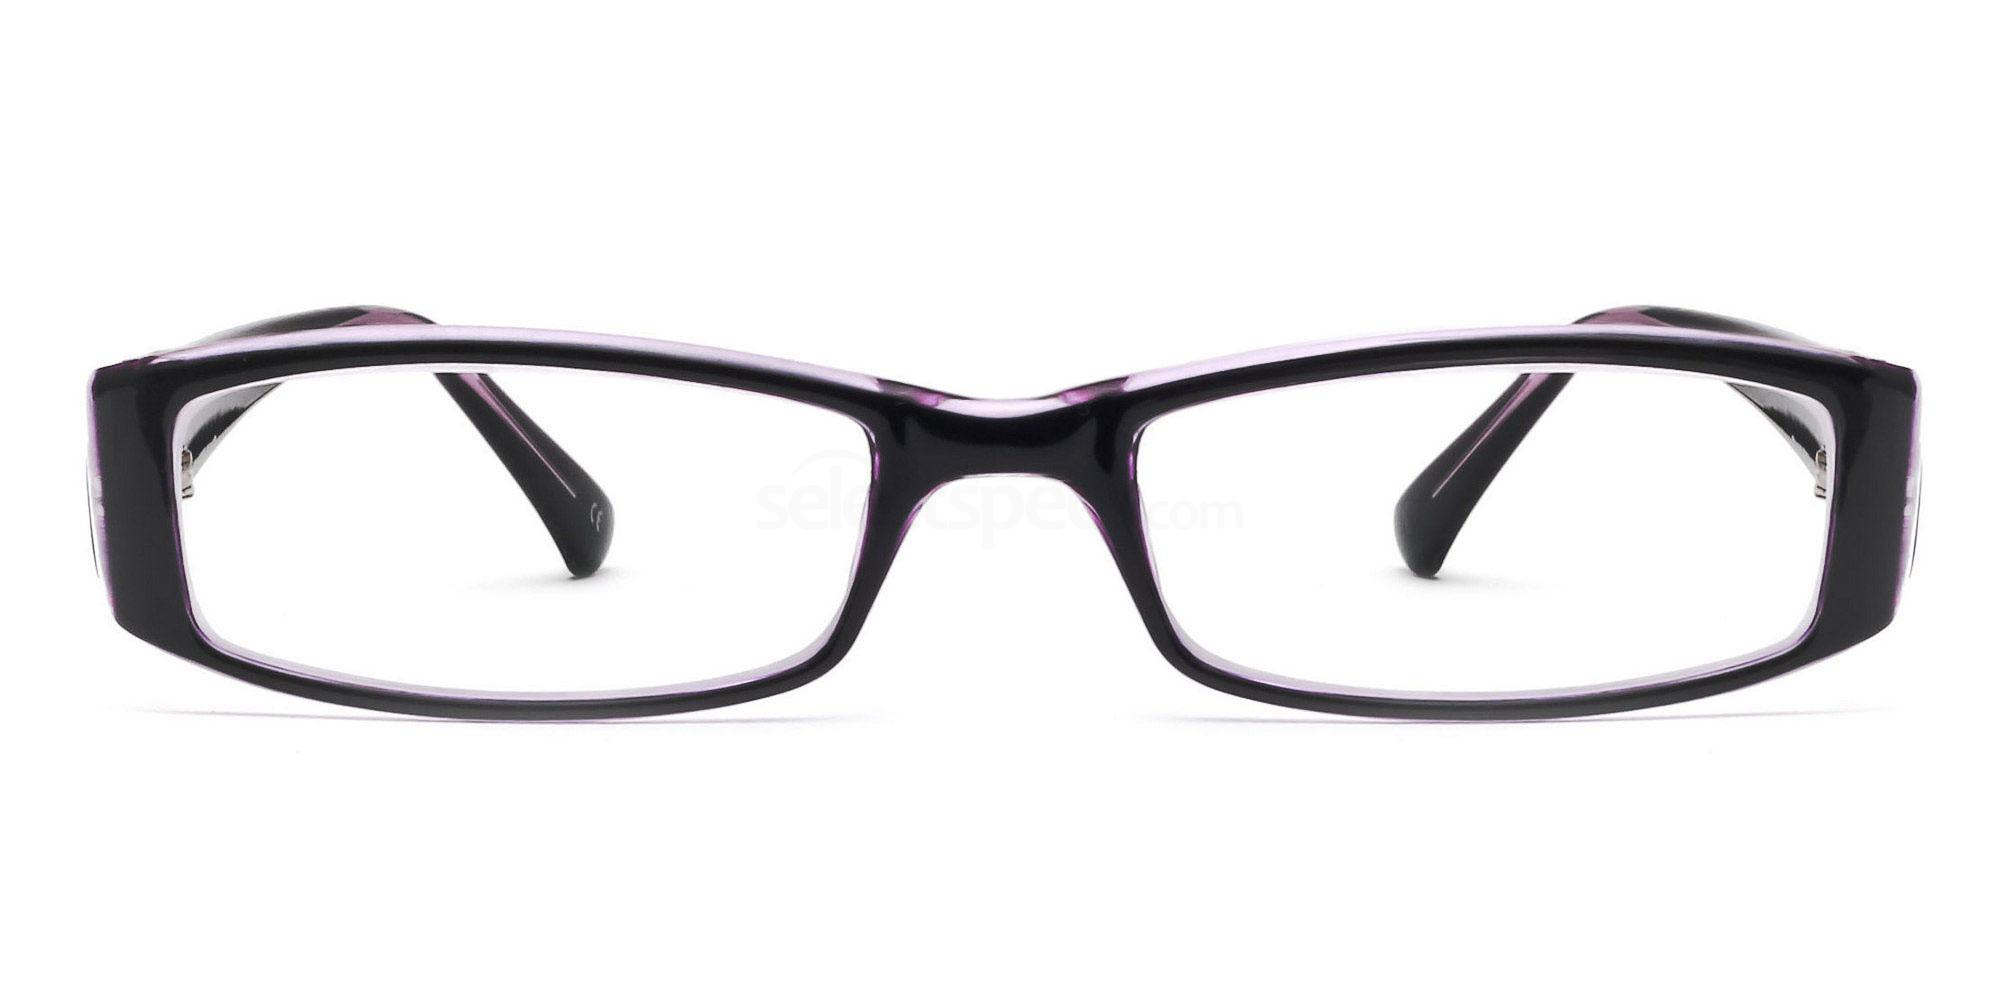 C44 P2251 - Black and Purple Glasses, SelectSpecs